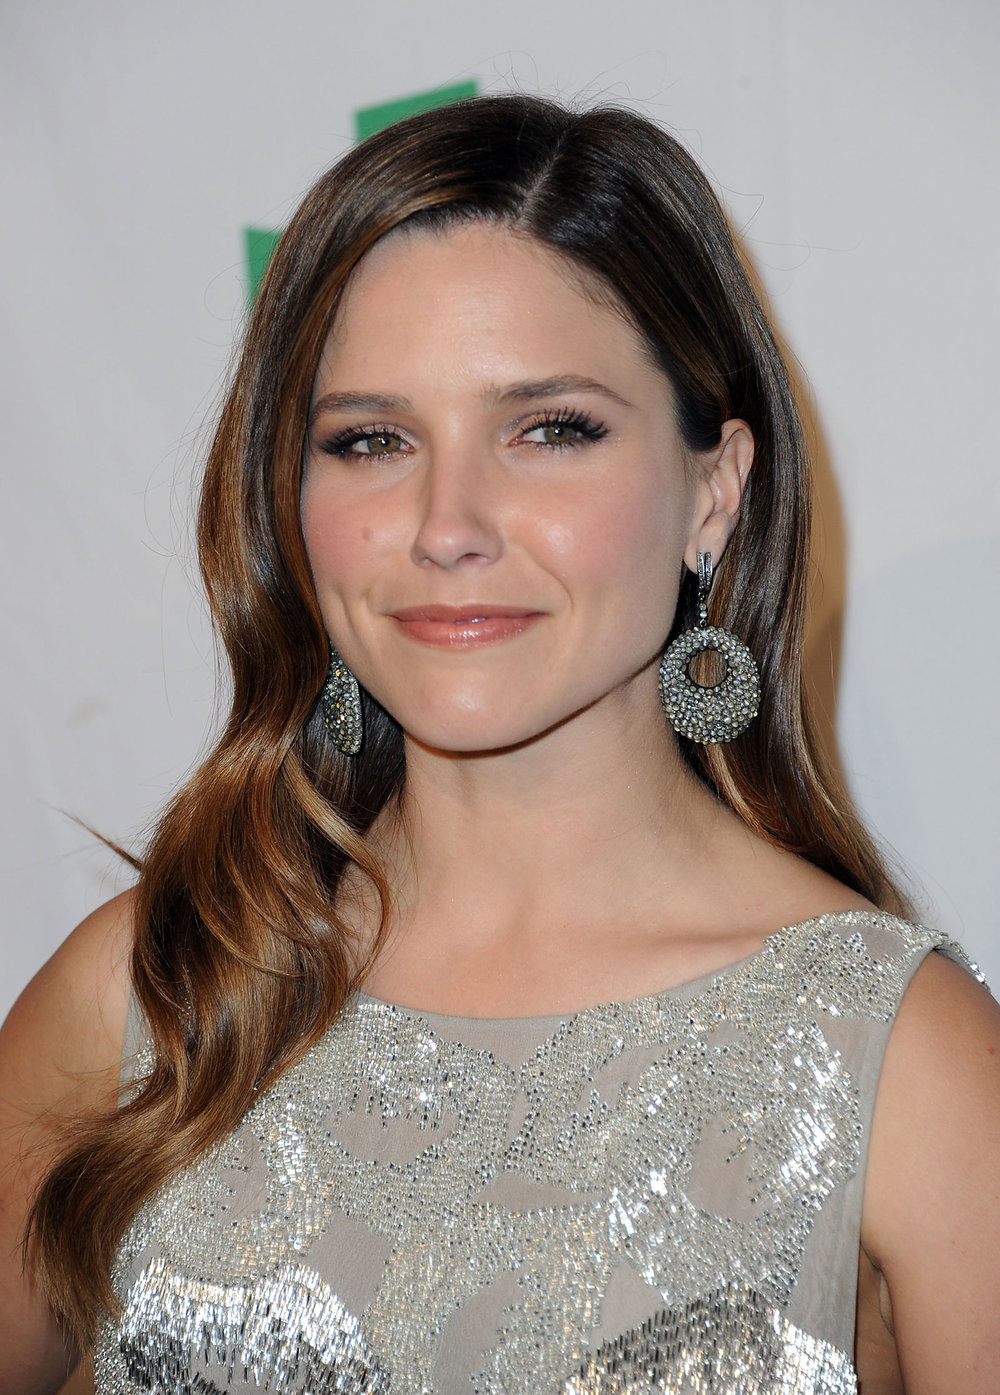 Sophia-Bush-at-Global-Green-USAs-Pre-Oscar-Party-5.jpg